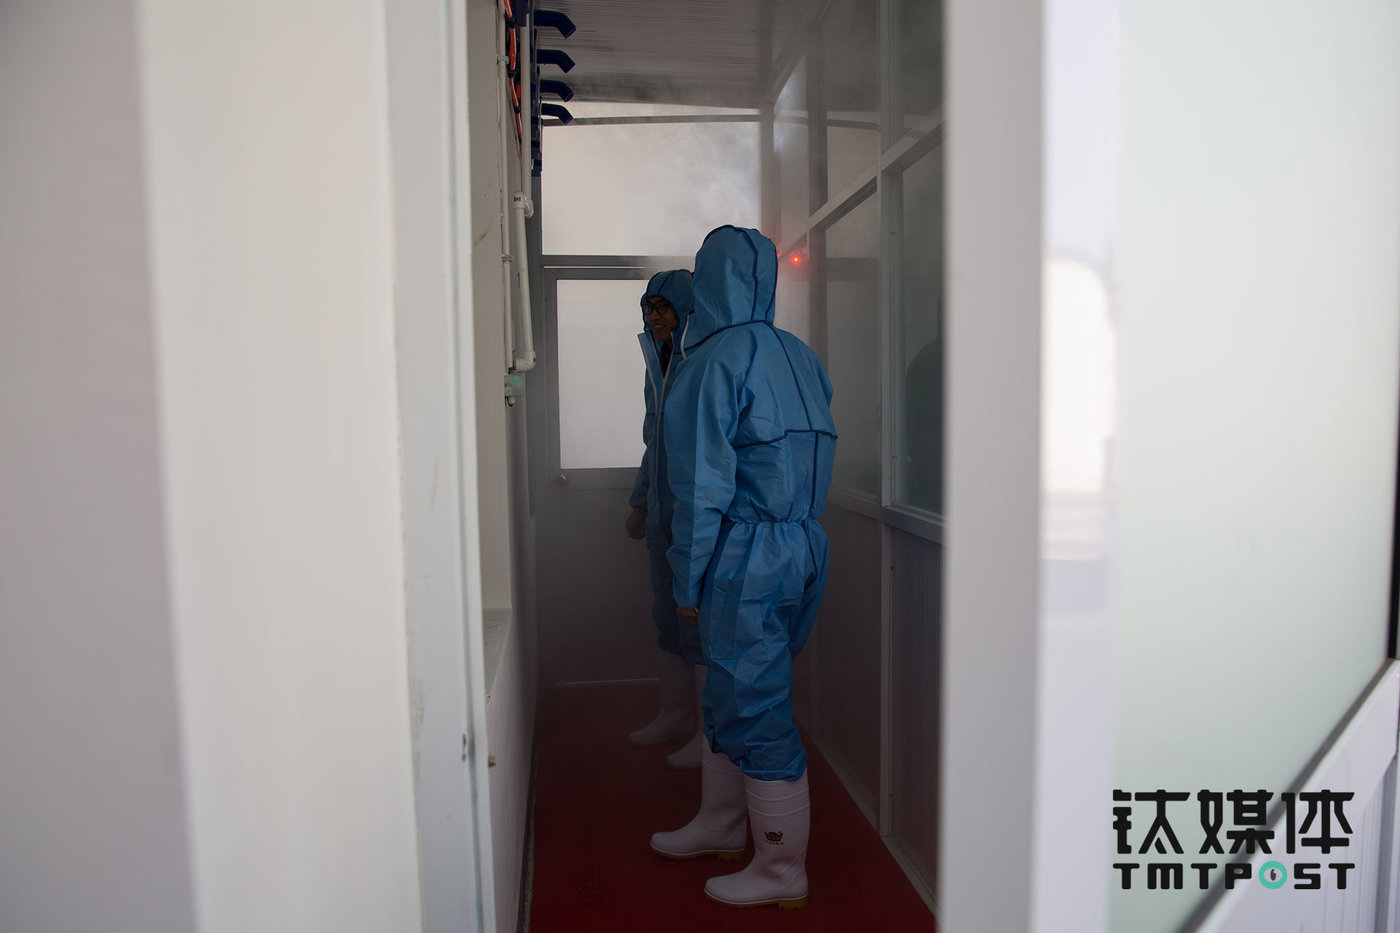 To prevent germs and viruses from entering, visitors would have to put up a protection suit and go through a decontamination hall that adopts ultrasound atomizing sterilization technology before entering the cultivation zone. The decontamination hall has a bathroom on the side. Technicians here at the cultivation zone are required to take a shower before and after work.